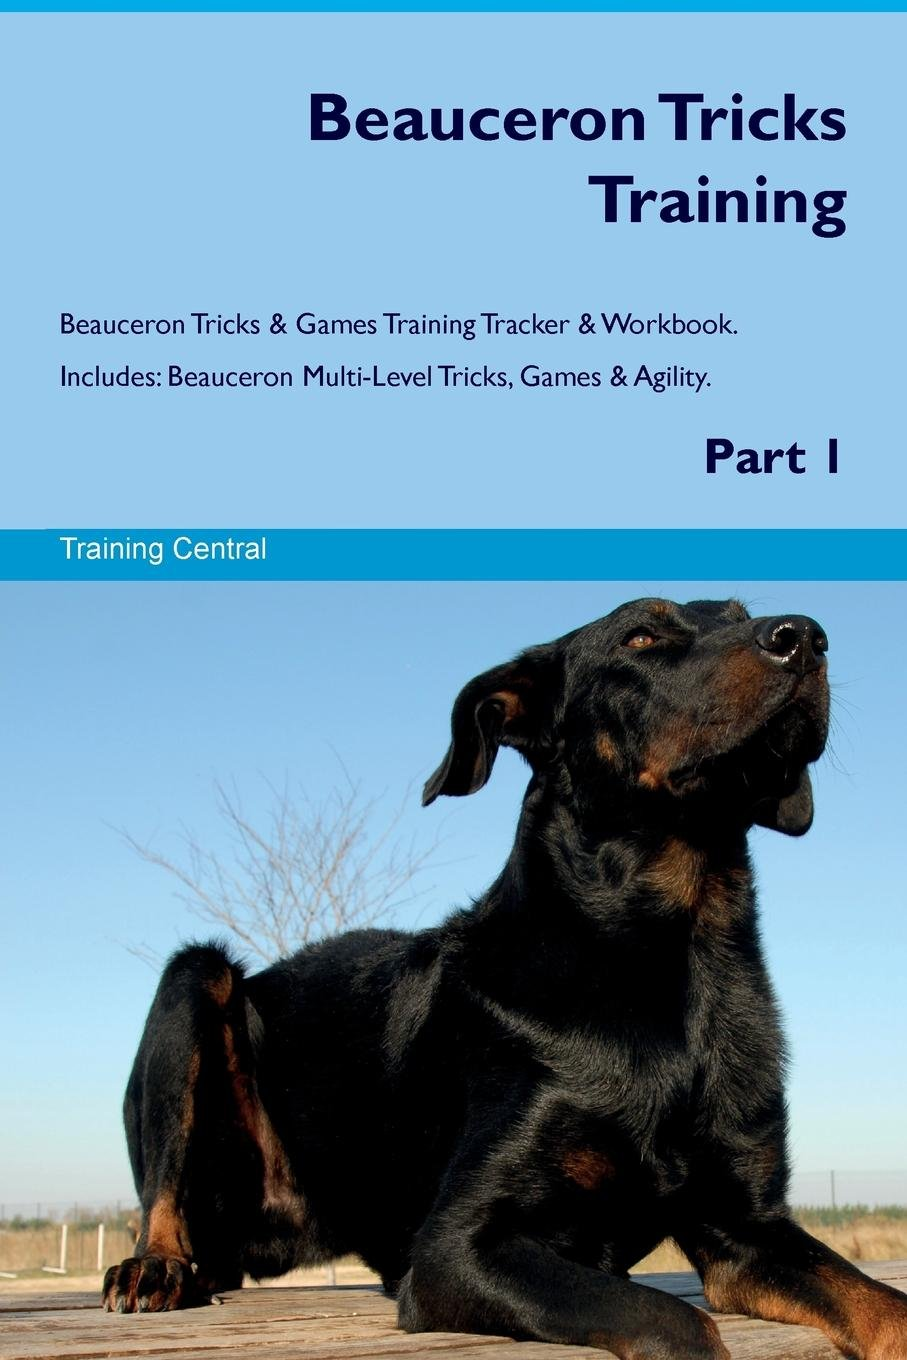 Beauceron Tricks Training Beauceron Tricks & Games Training Tracker & Workbook.  Includes: Beauceron Multi-Level Tricks, Games & Agility. Part 1